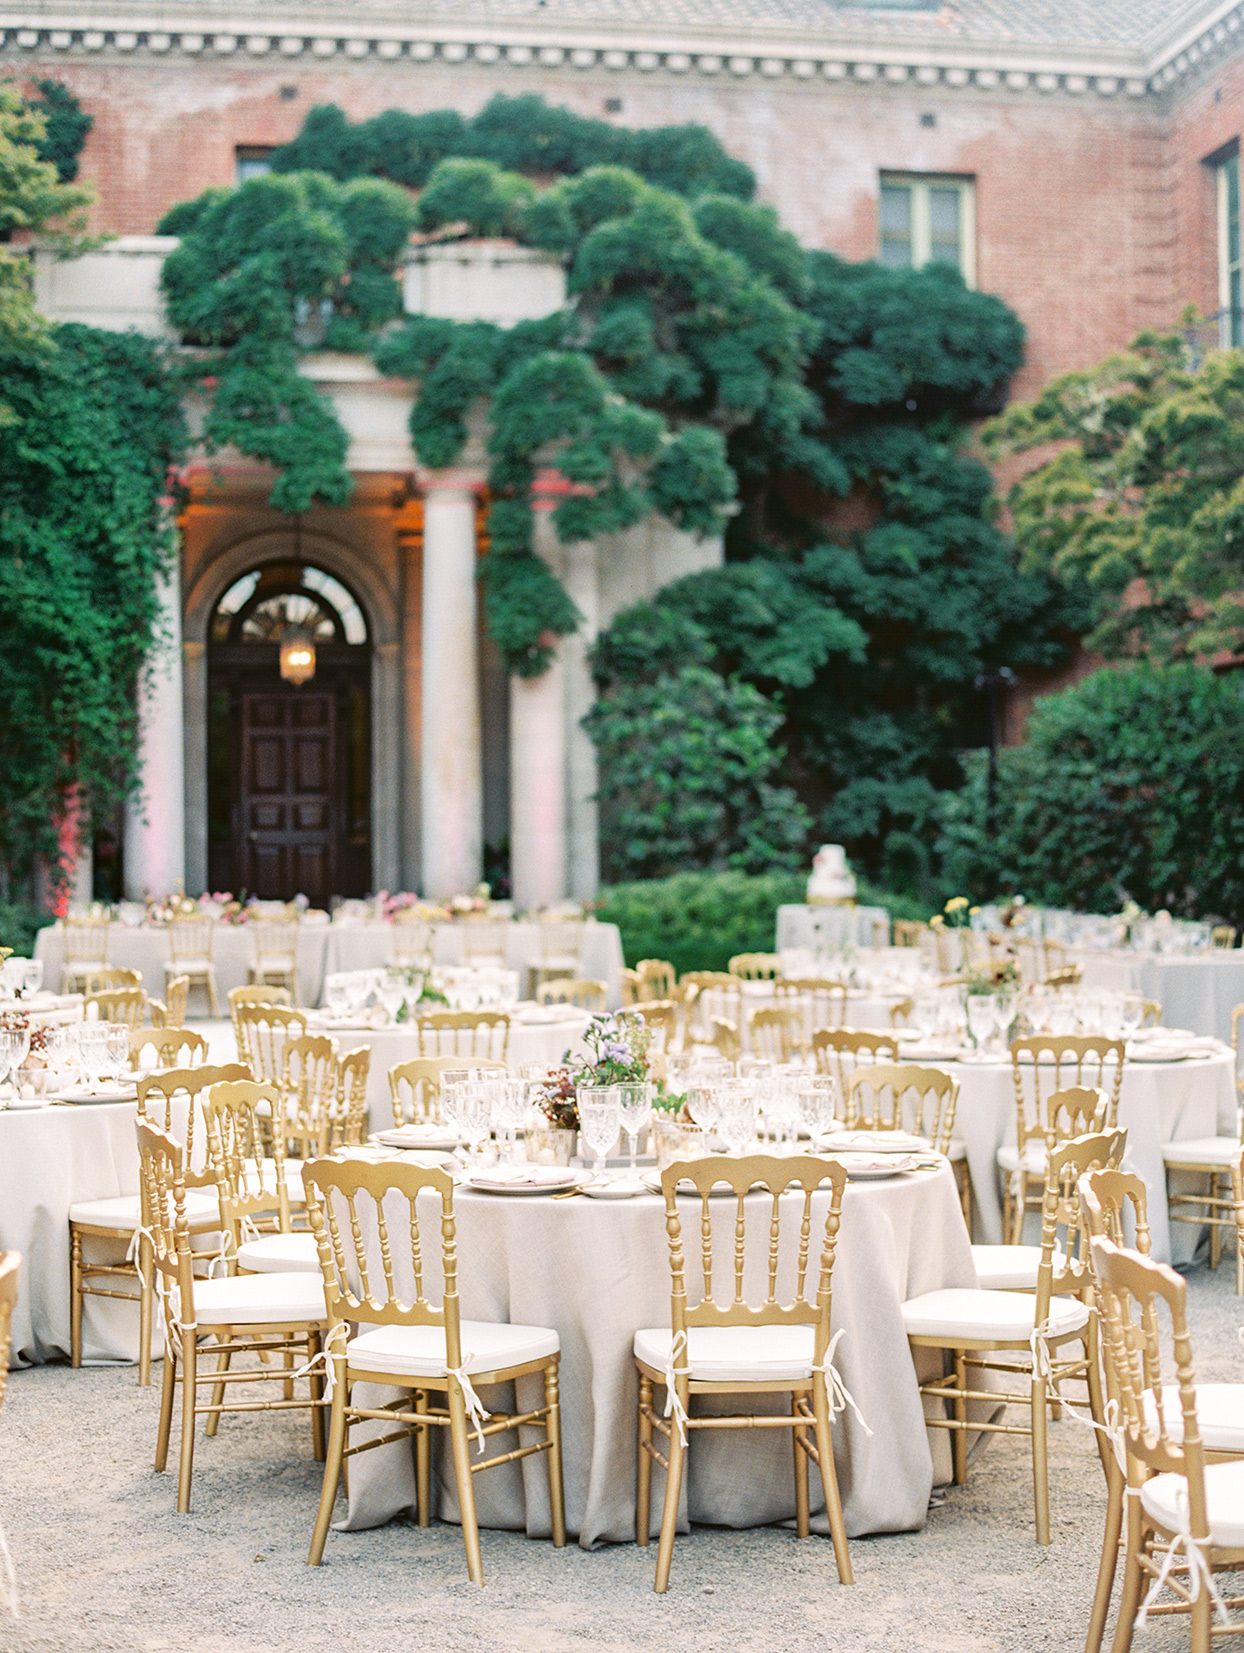 yalda anusha wedding reception round tables outdoors with gold chairs